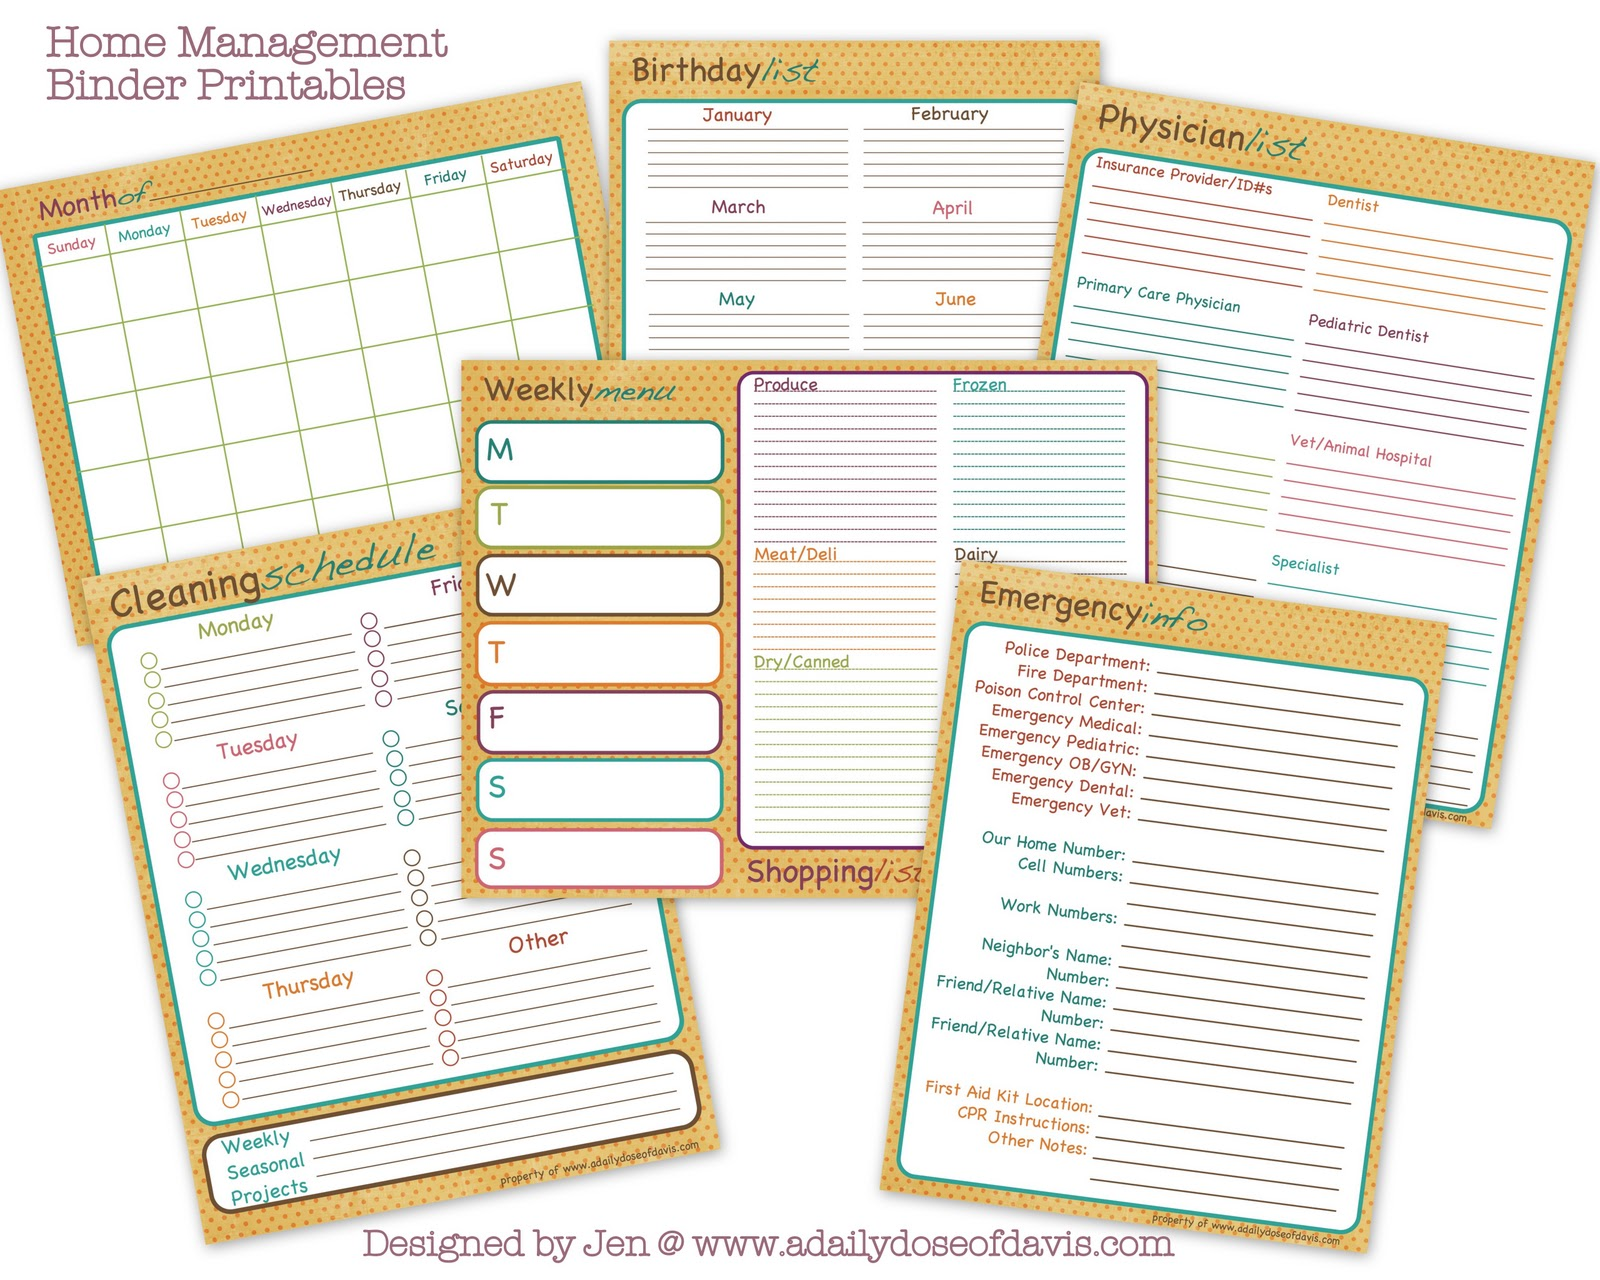 6 Images of Household Management Printables For Free